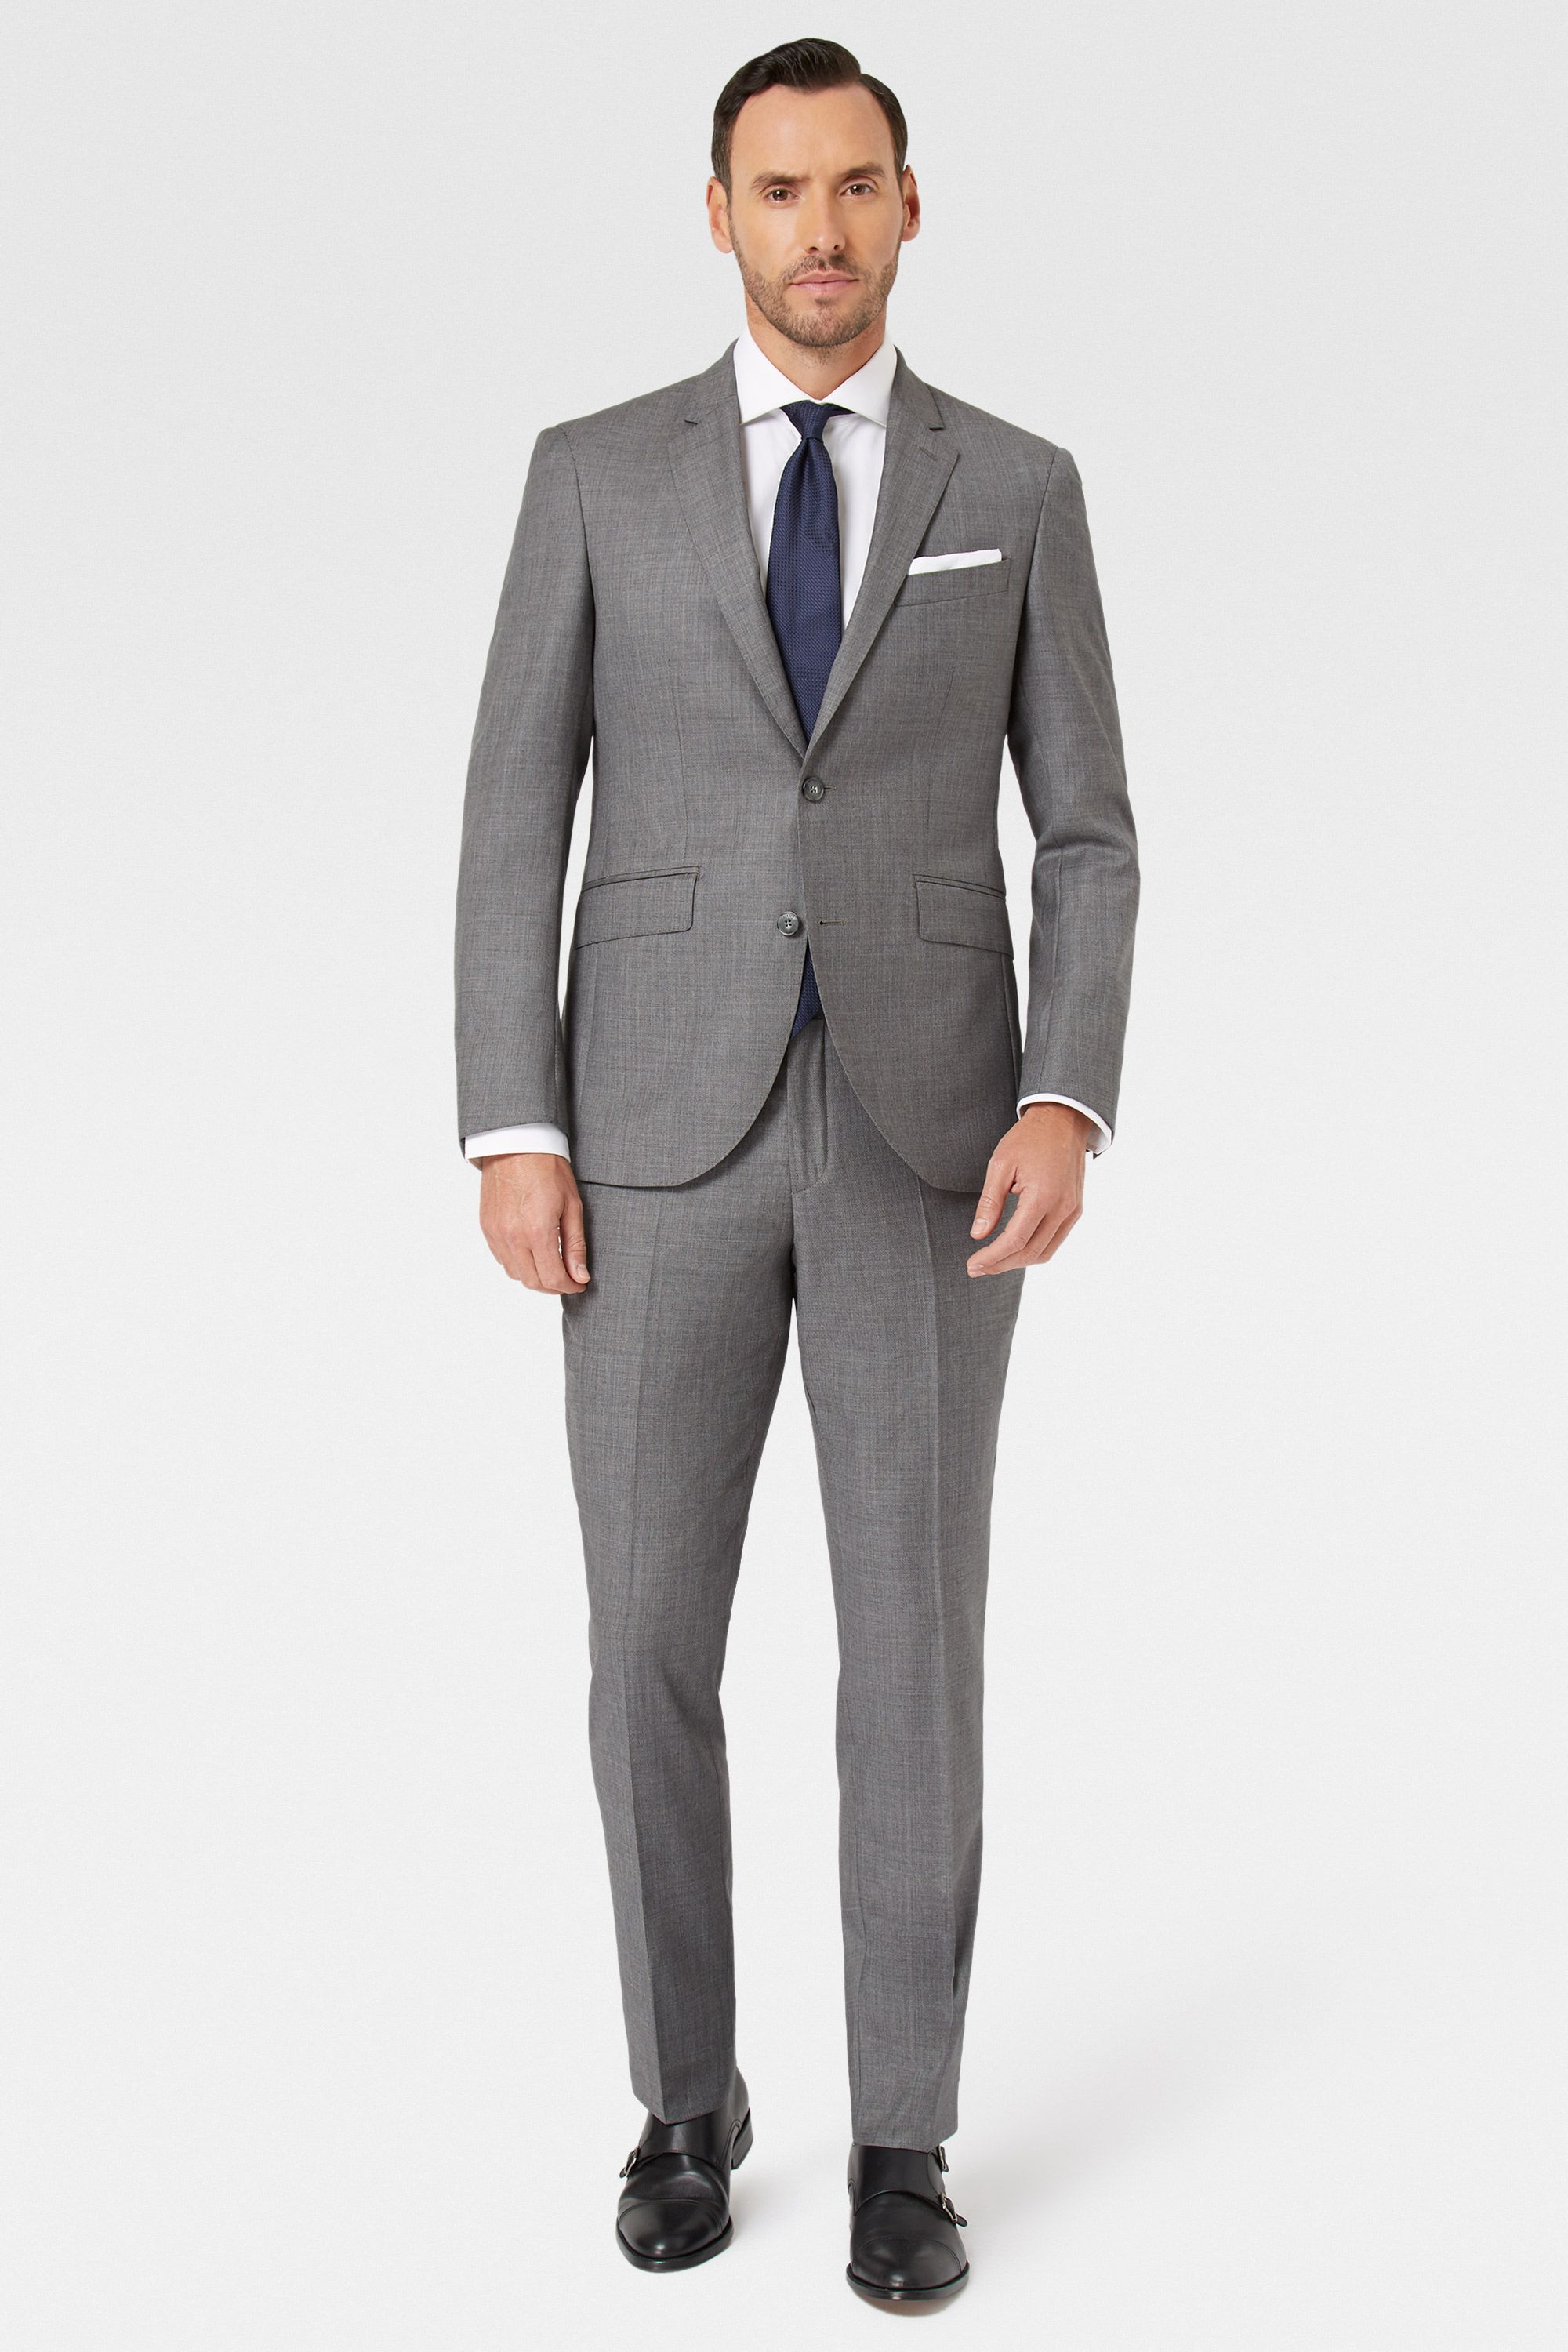 Costume gris mariage light grey suit wedding suit italian loro piana cloth and is finished in - Costume gris mariage ...